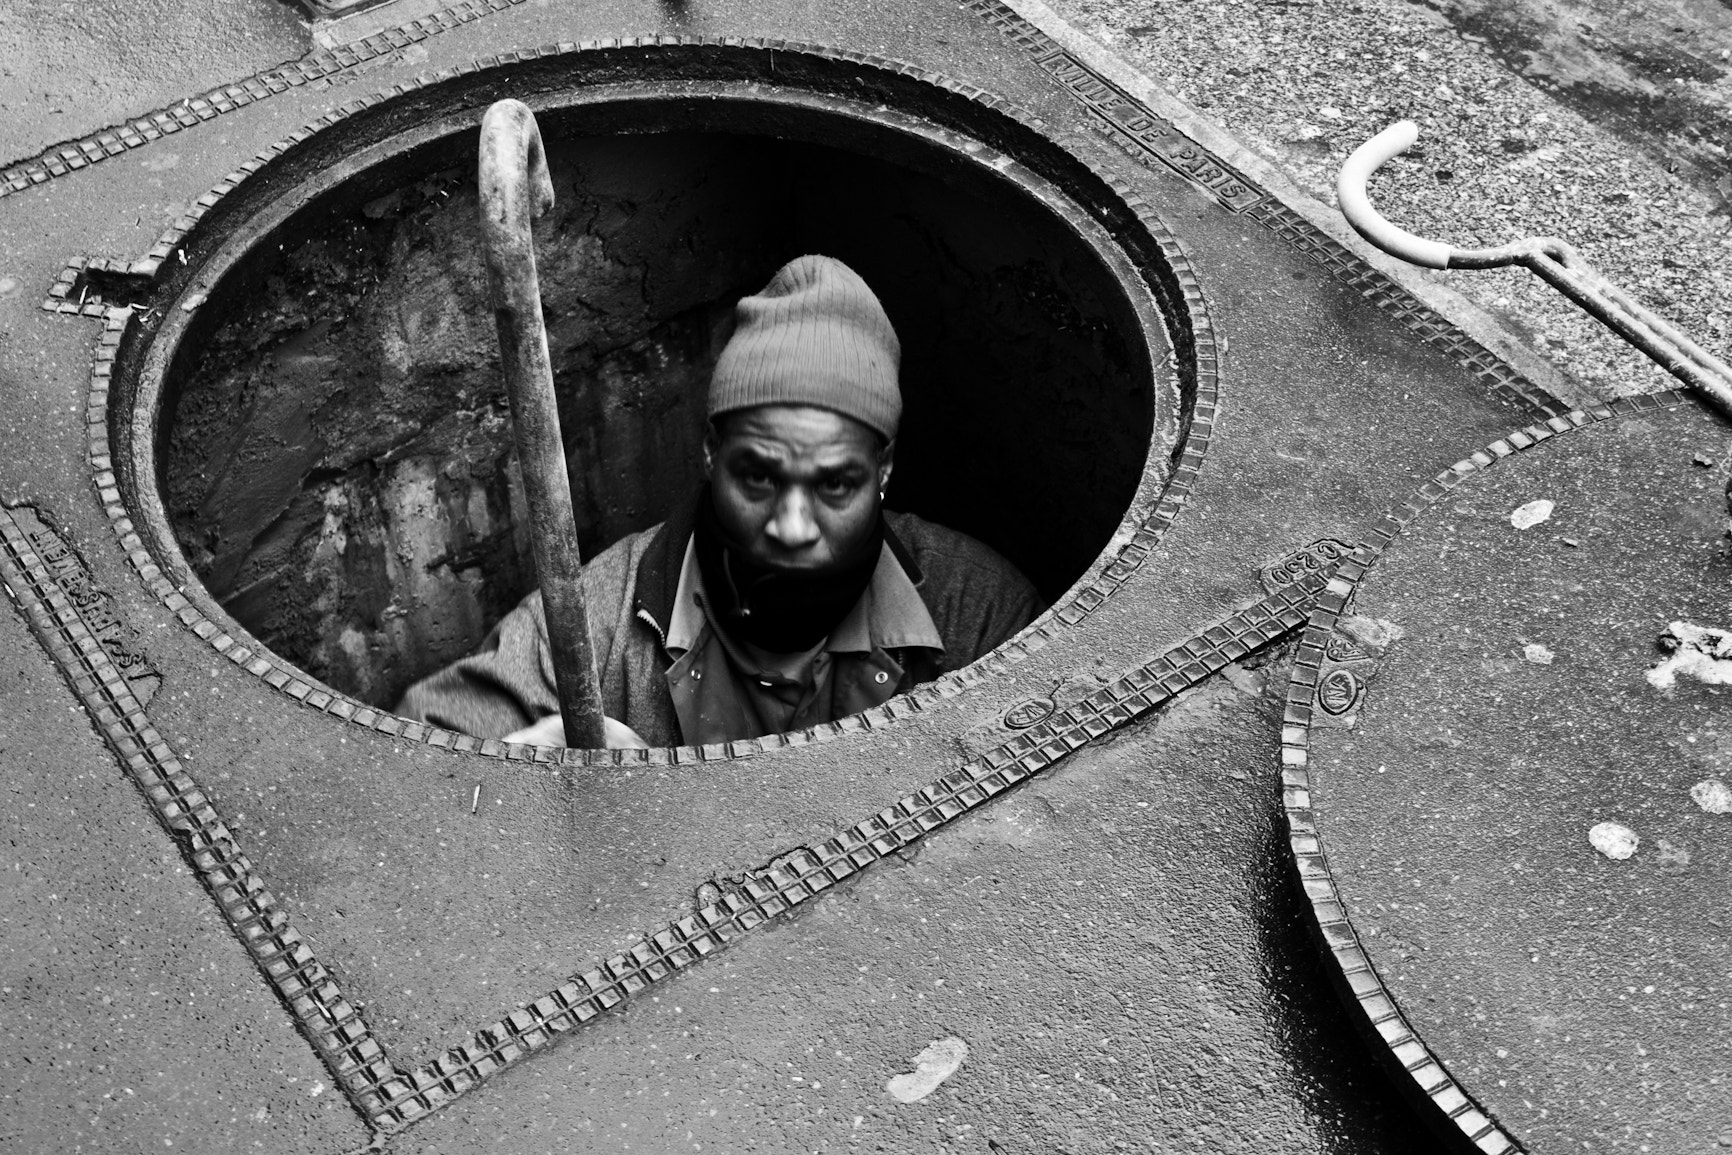 Photograph Sewage worker by David Rousselle on 500px